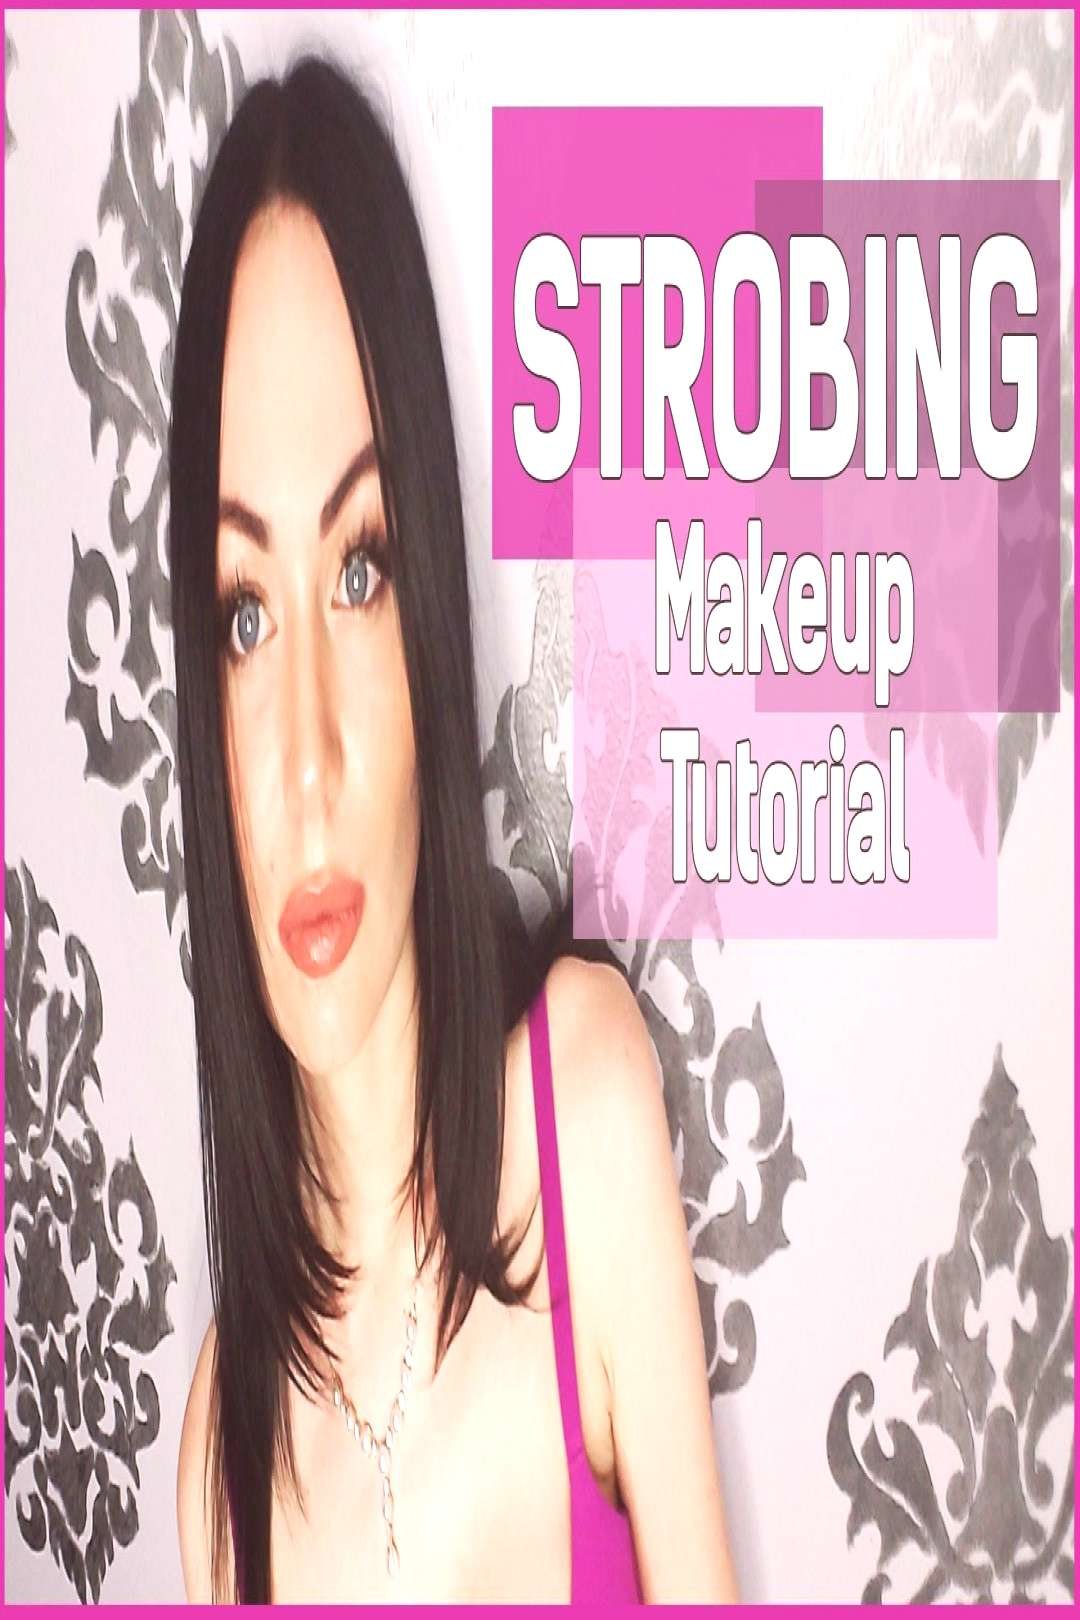 STROBING MAKEUP TUTORIAL / Strobing a new facial contouring technique#contouring... STROBING MAKEUP